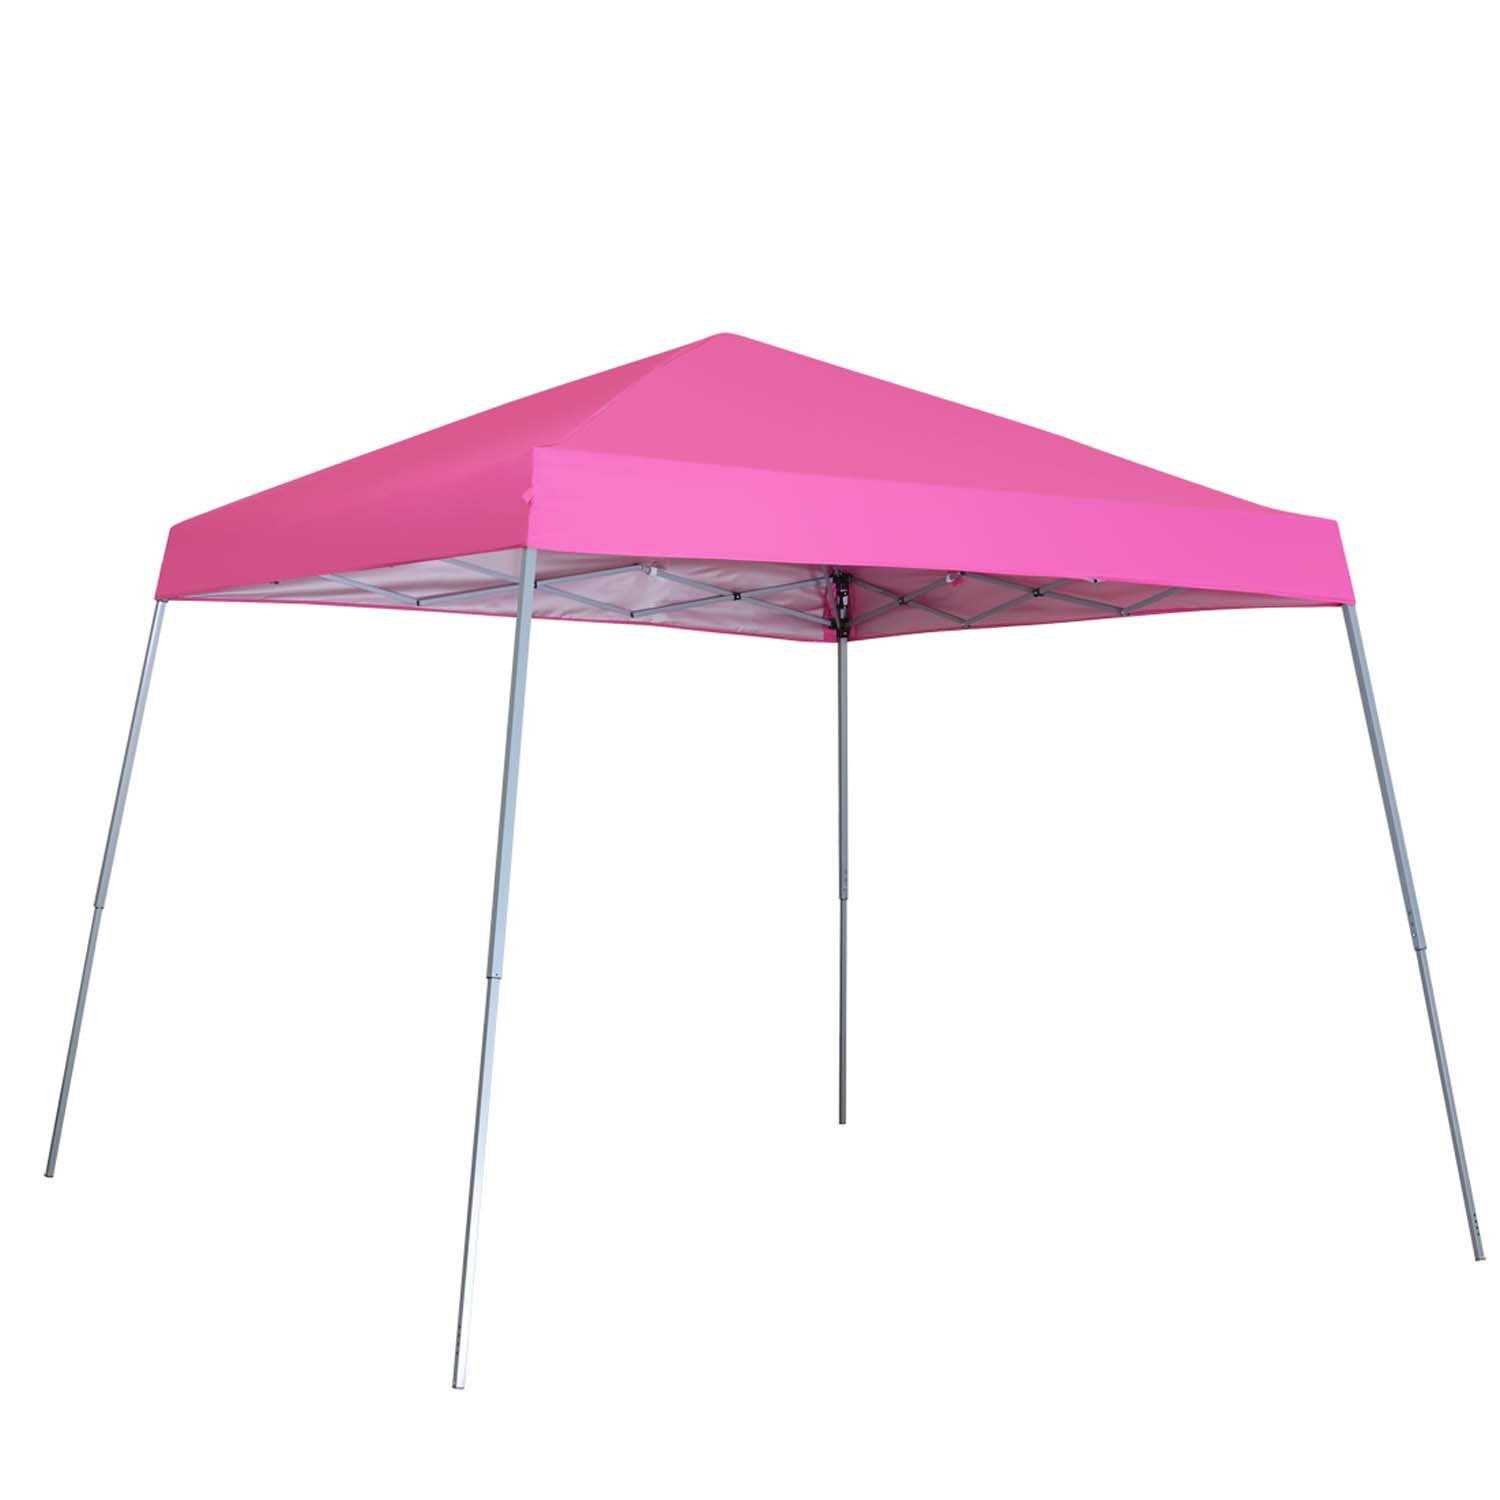 Outdoor Basic 8 x 8 Ft Canopies 10 x 10 Ft Base Slant Legs Pop up Canopy Tent For Camping Party Pink